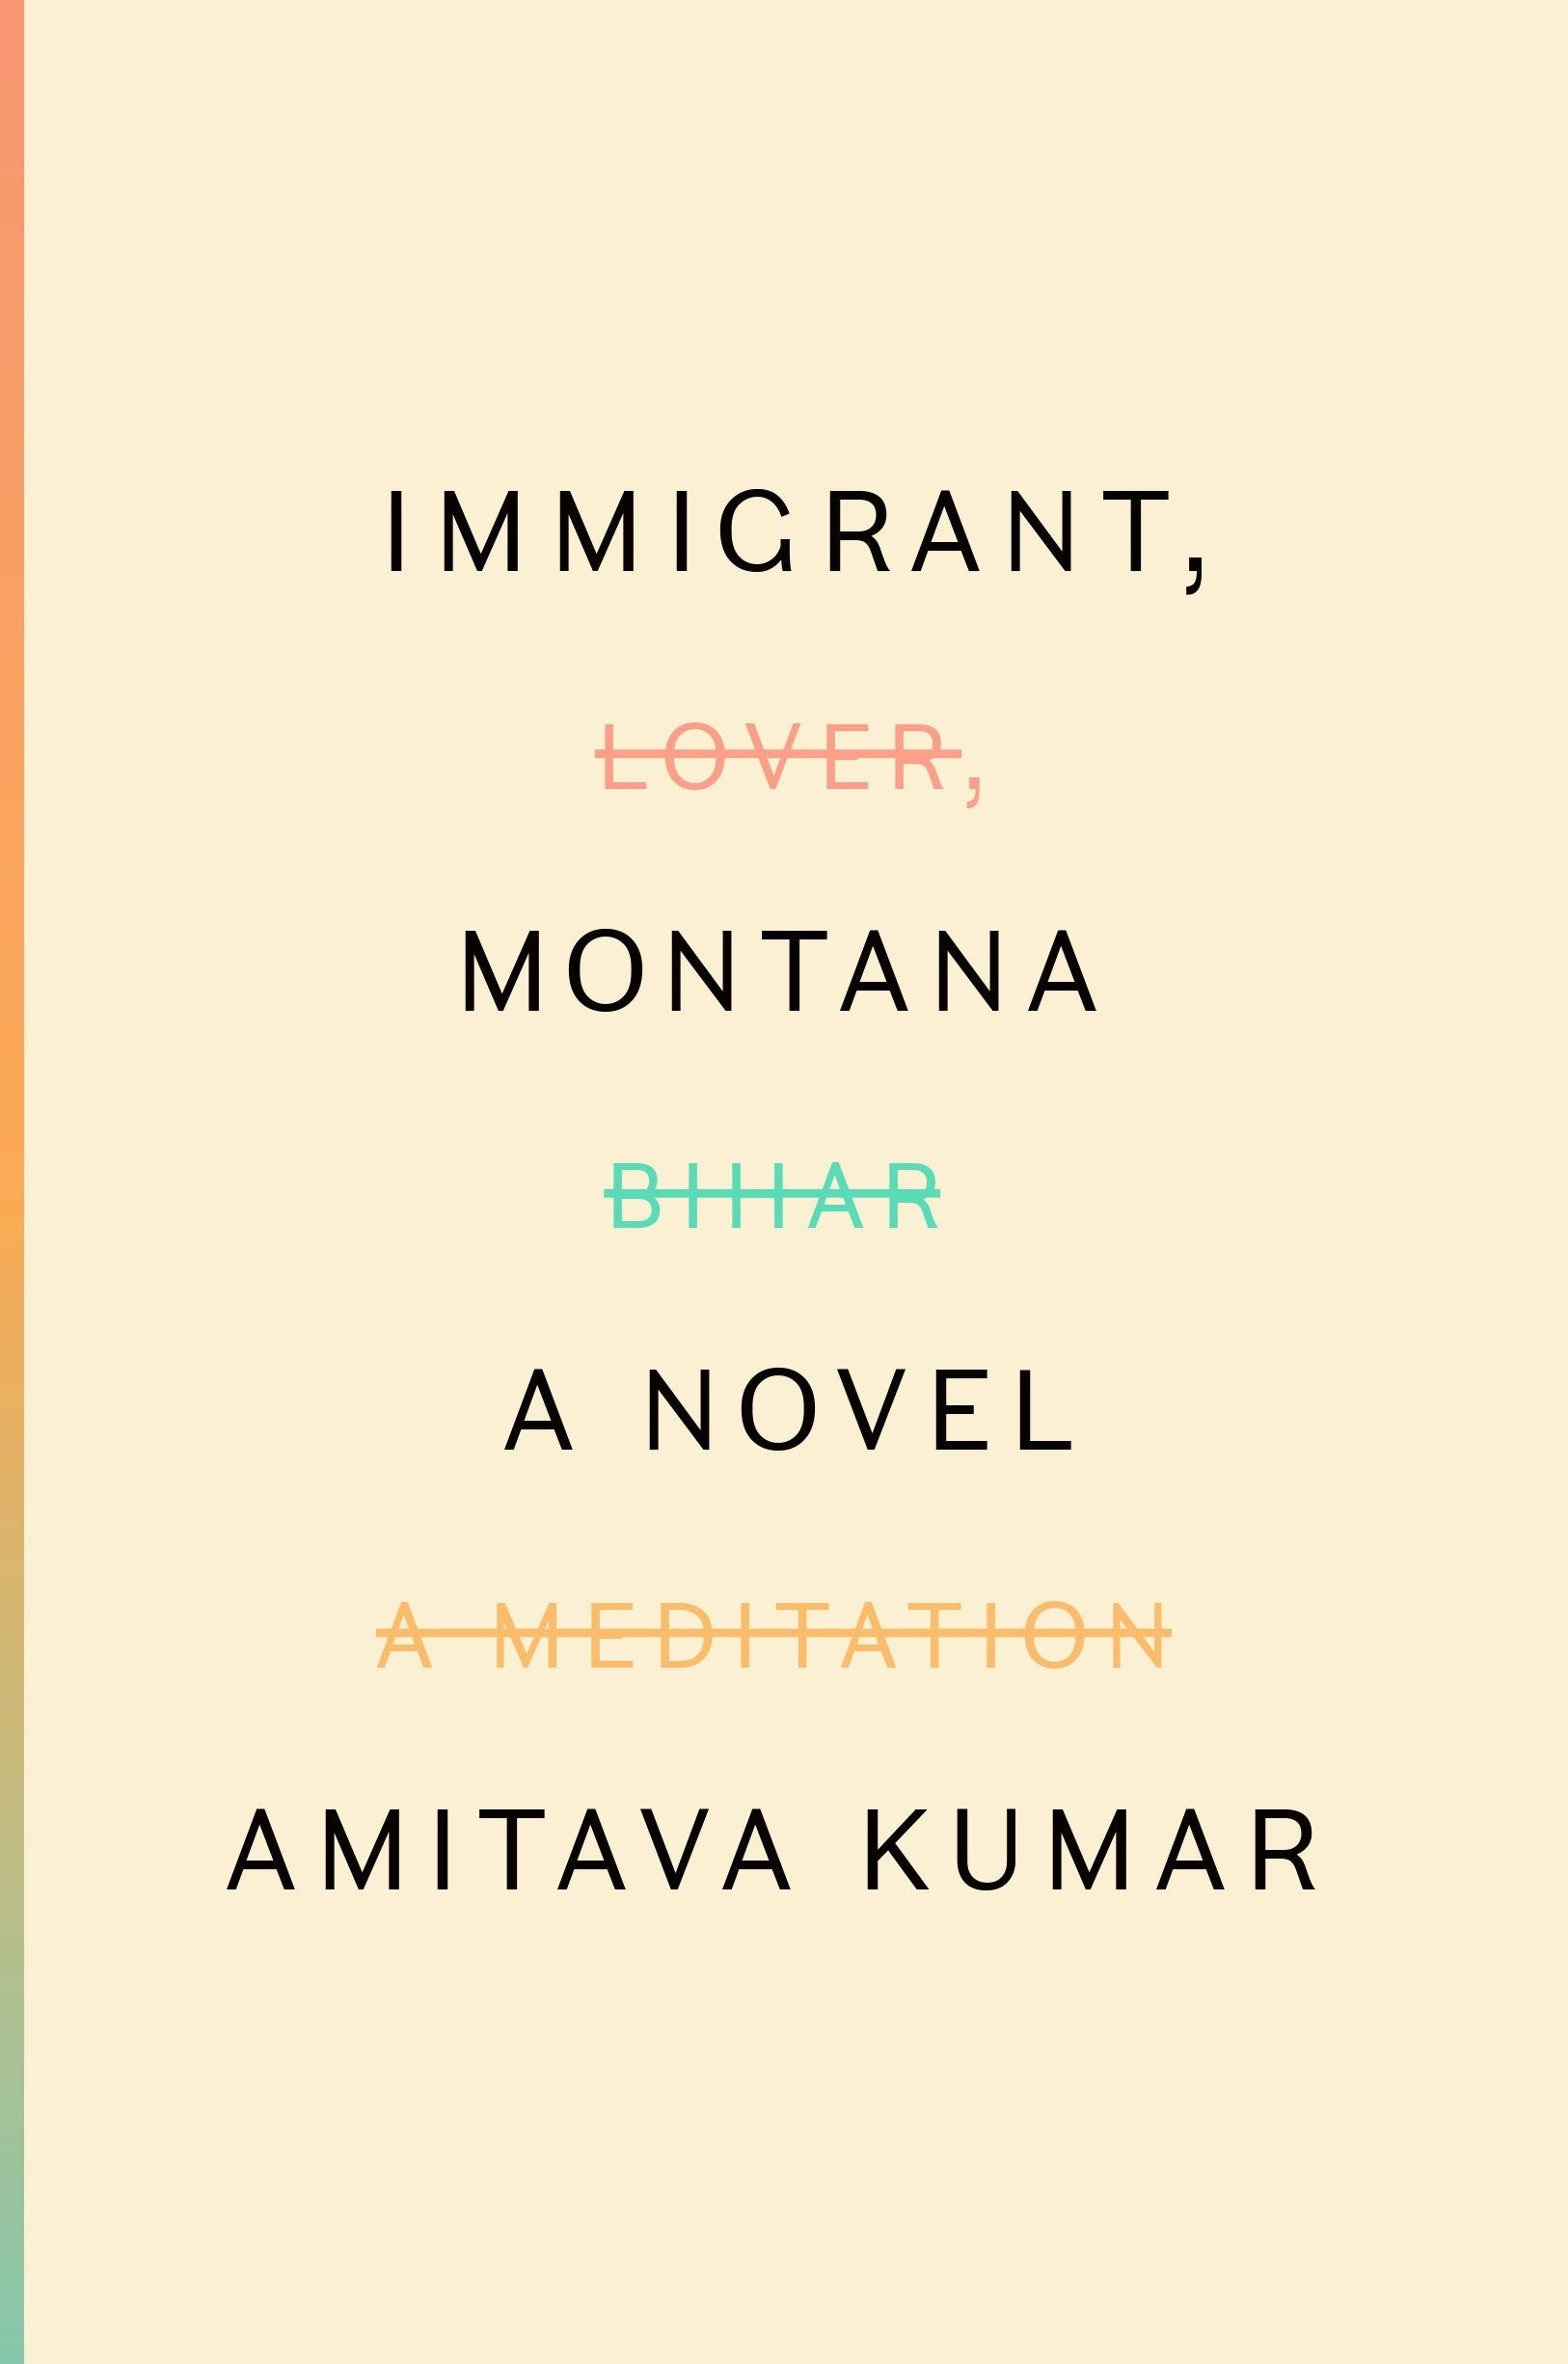 Immigrant montana book cover